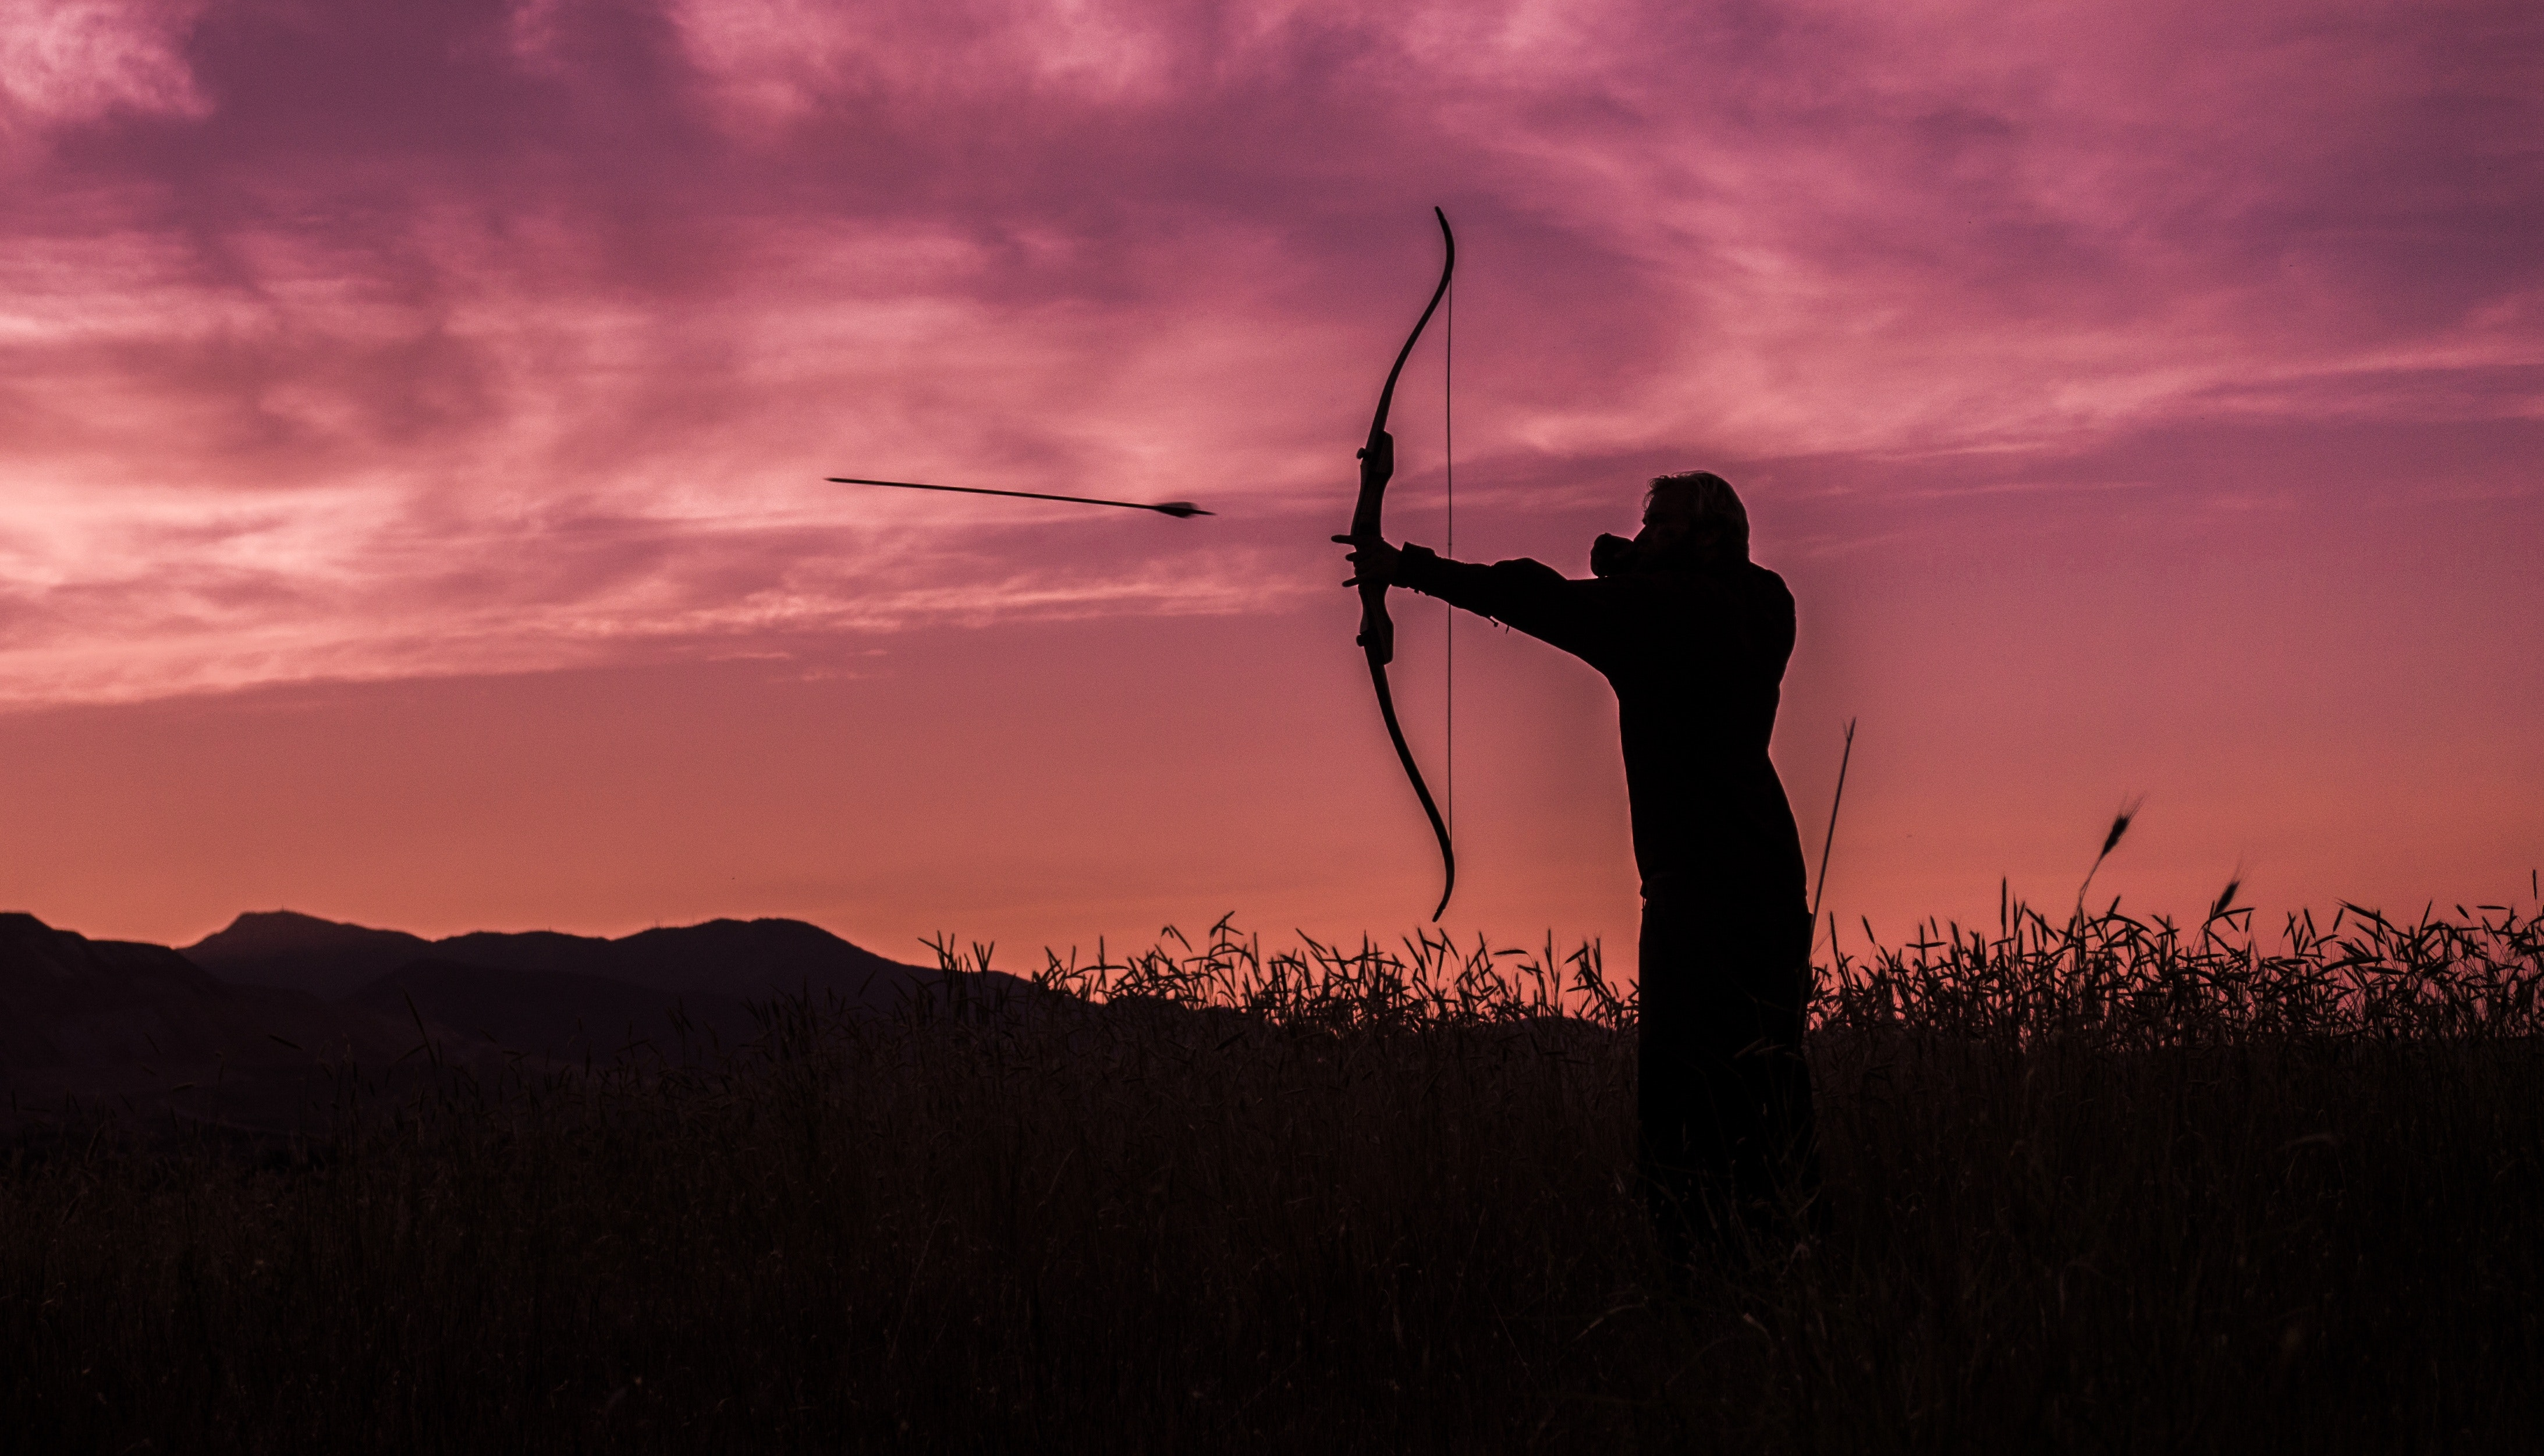 Person Shooting Arrow from Bow · Free Stock Photo